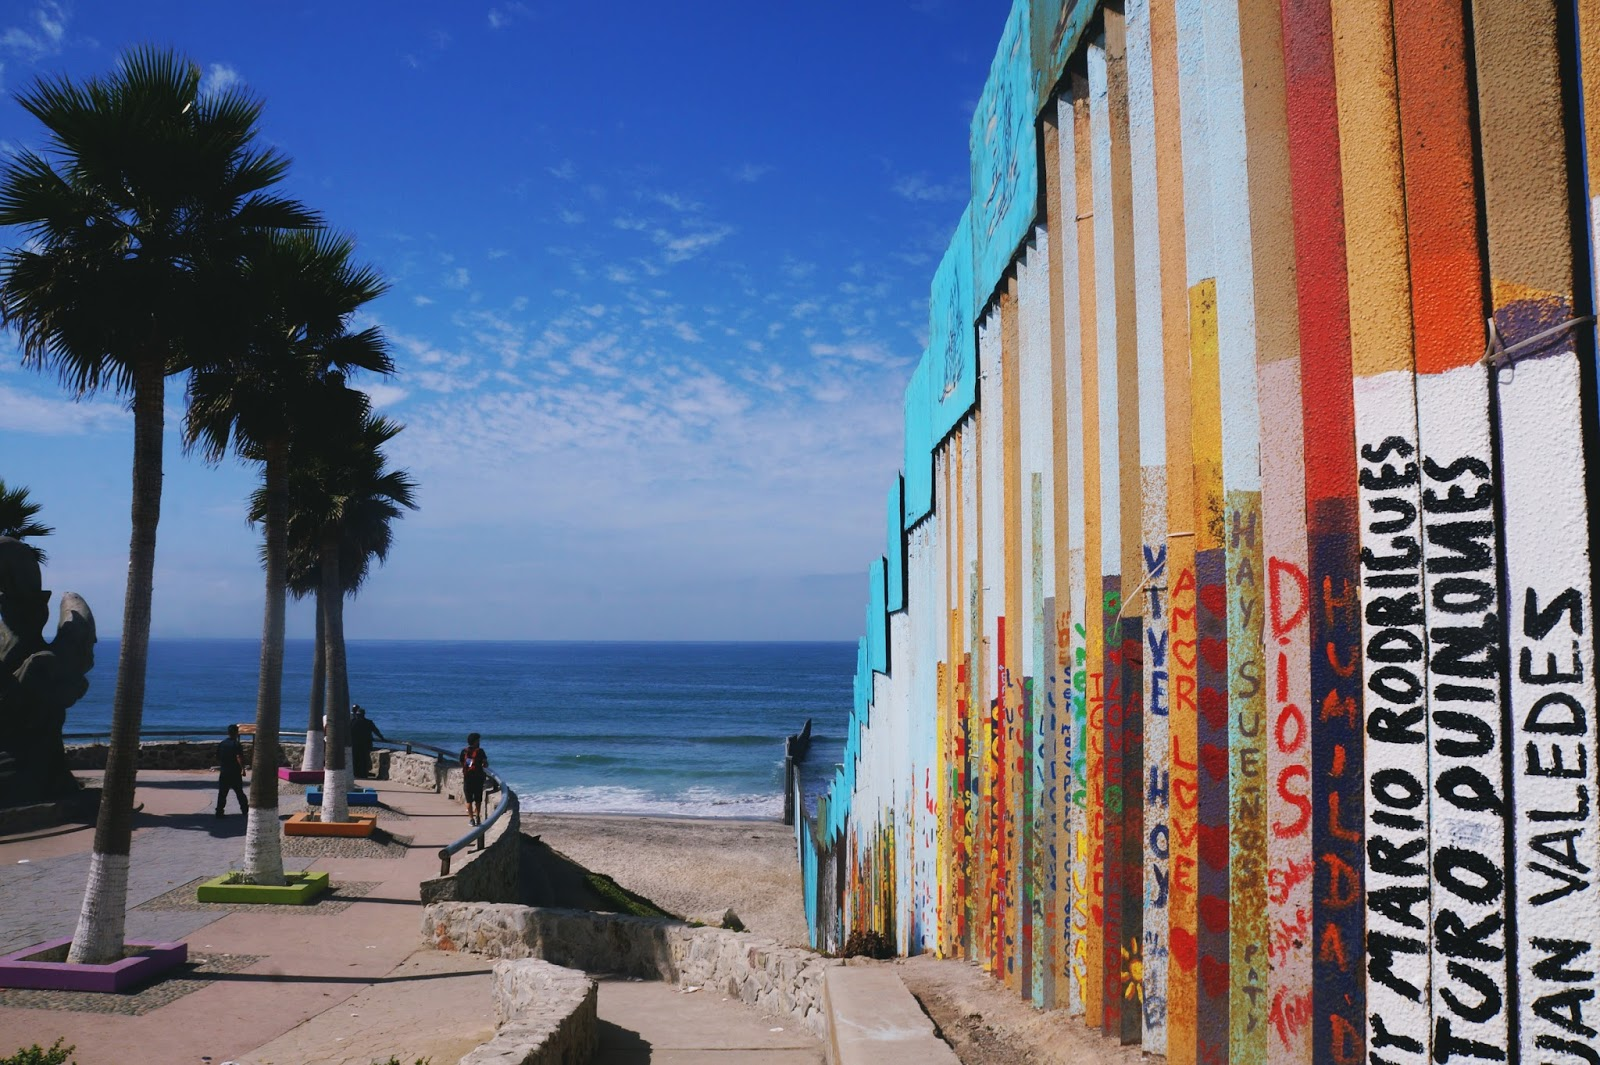 Things To Do at Playas de Tijuana, Mexico